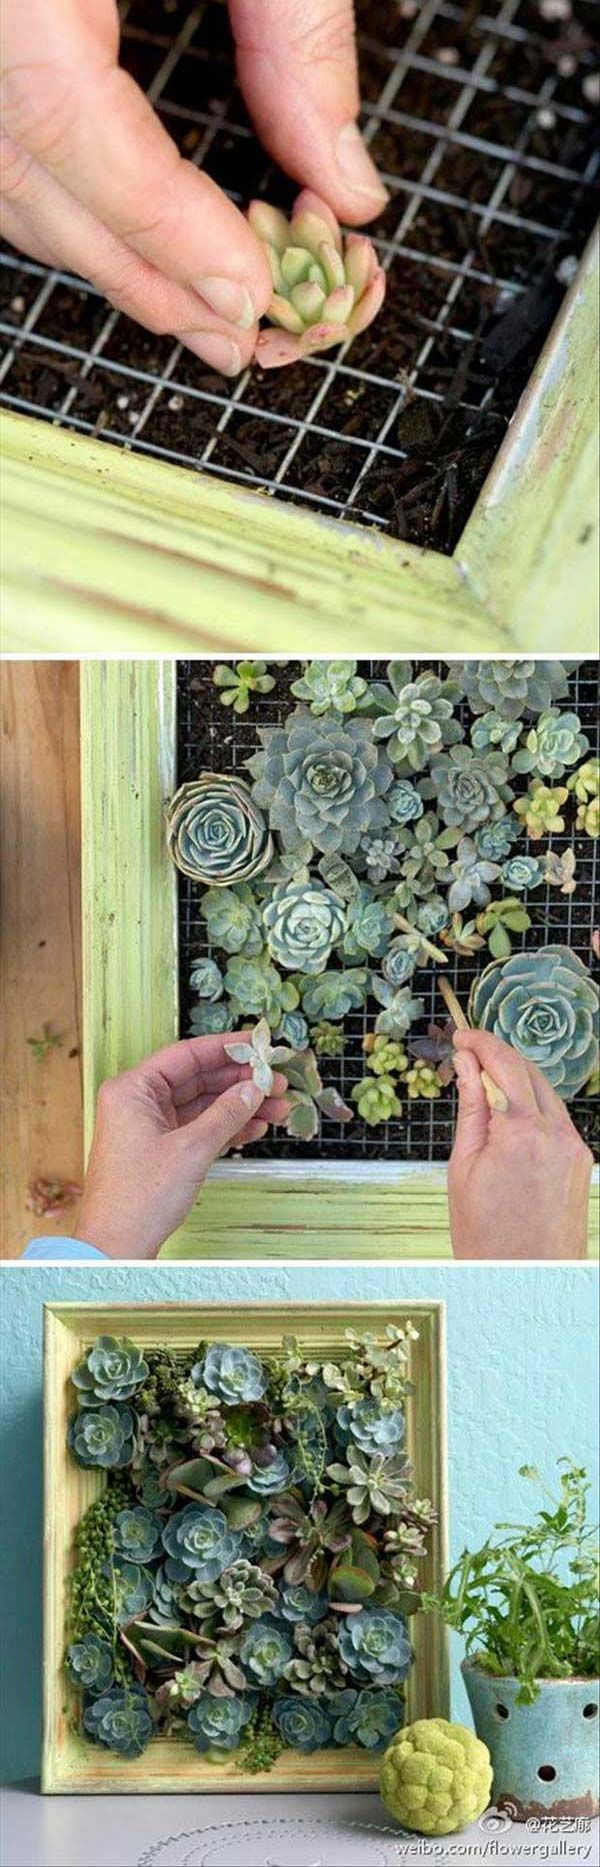 40 best air plants and succulents images on pinterest gardening